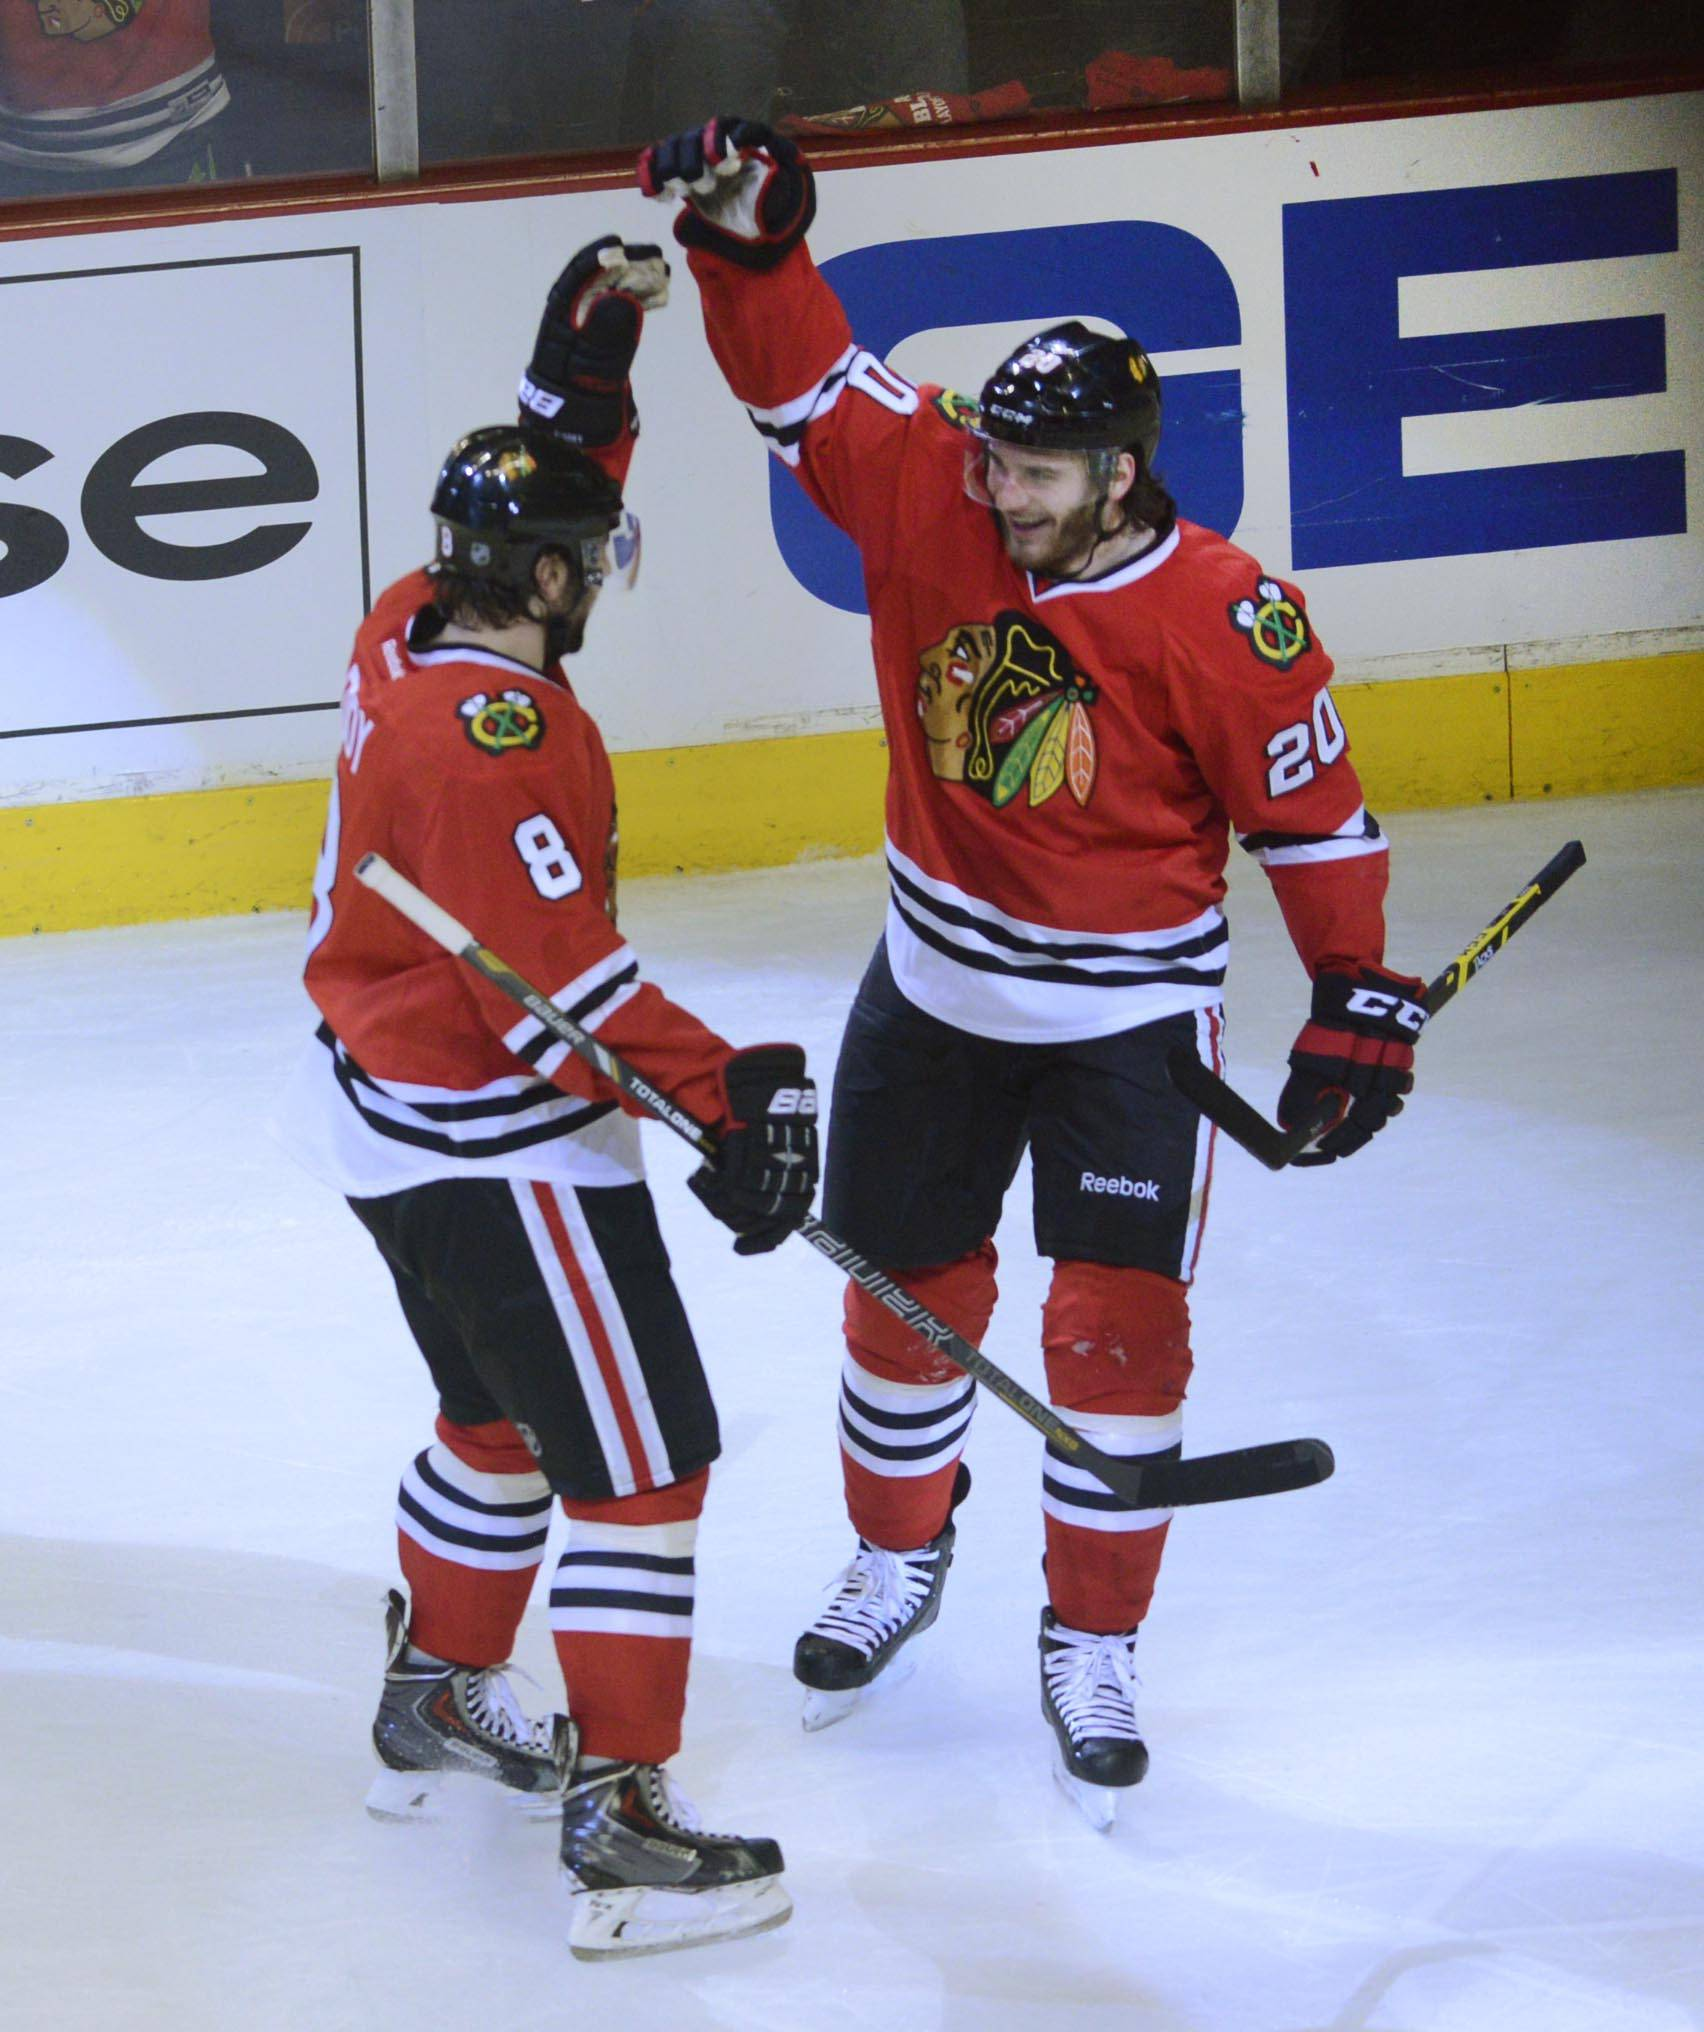 Chicago Blackhawks left wing Brandon Saad celebrates his goal with teammate Nick Leddy.